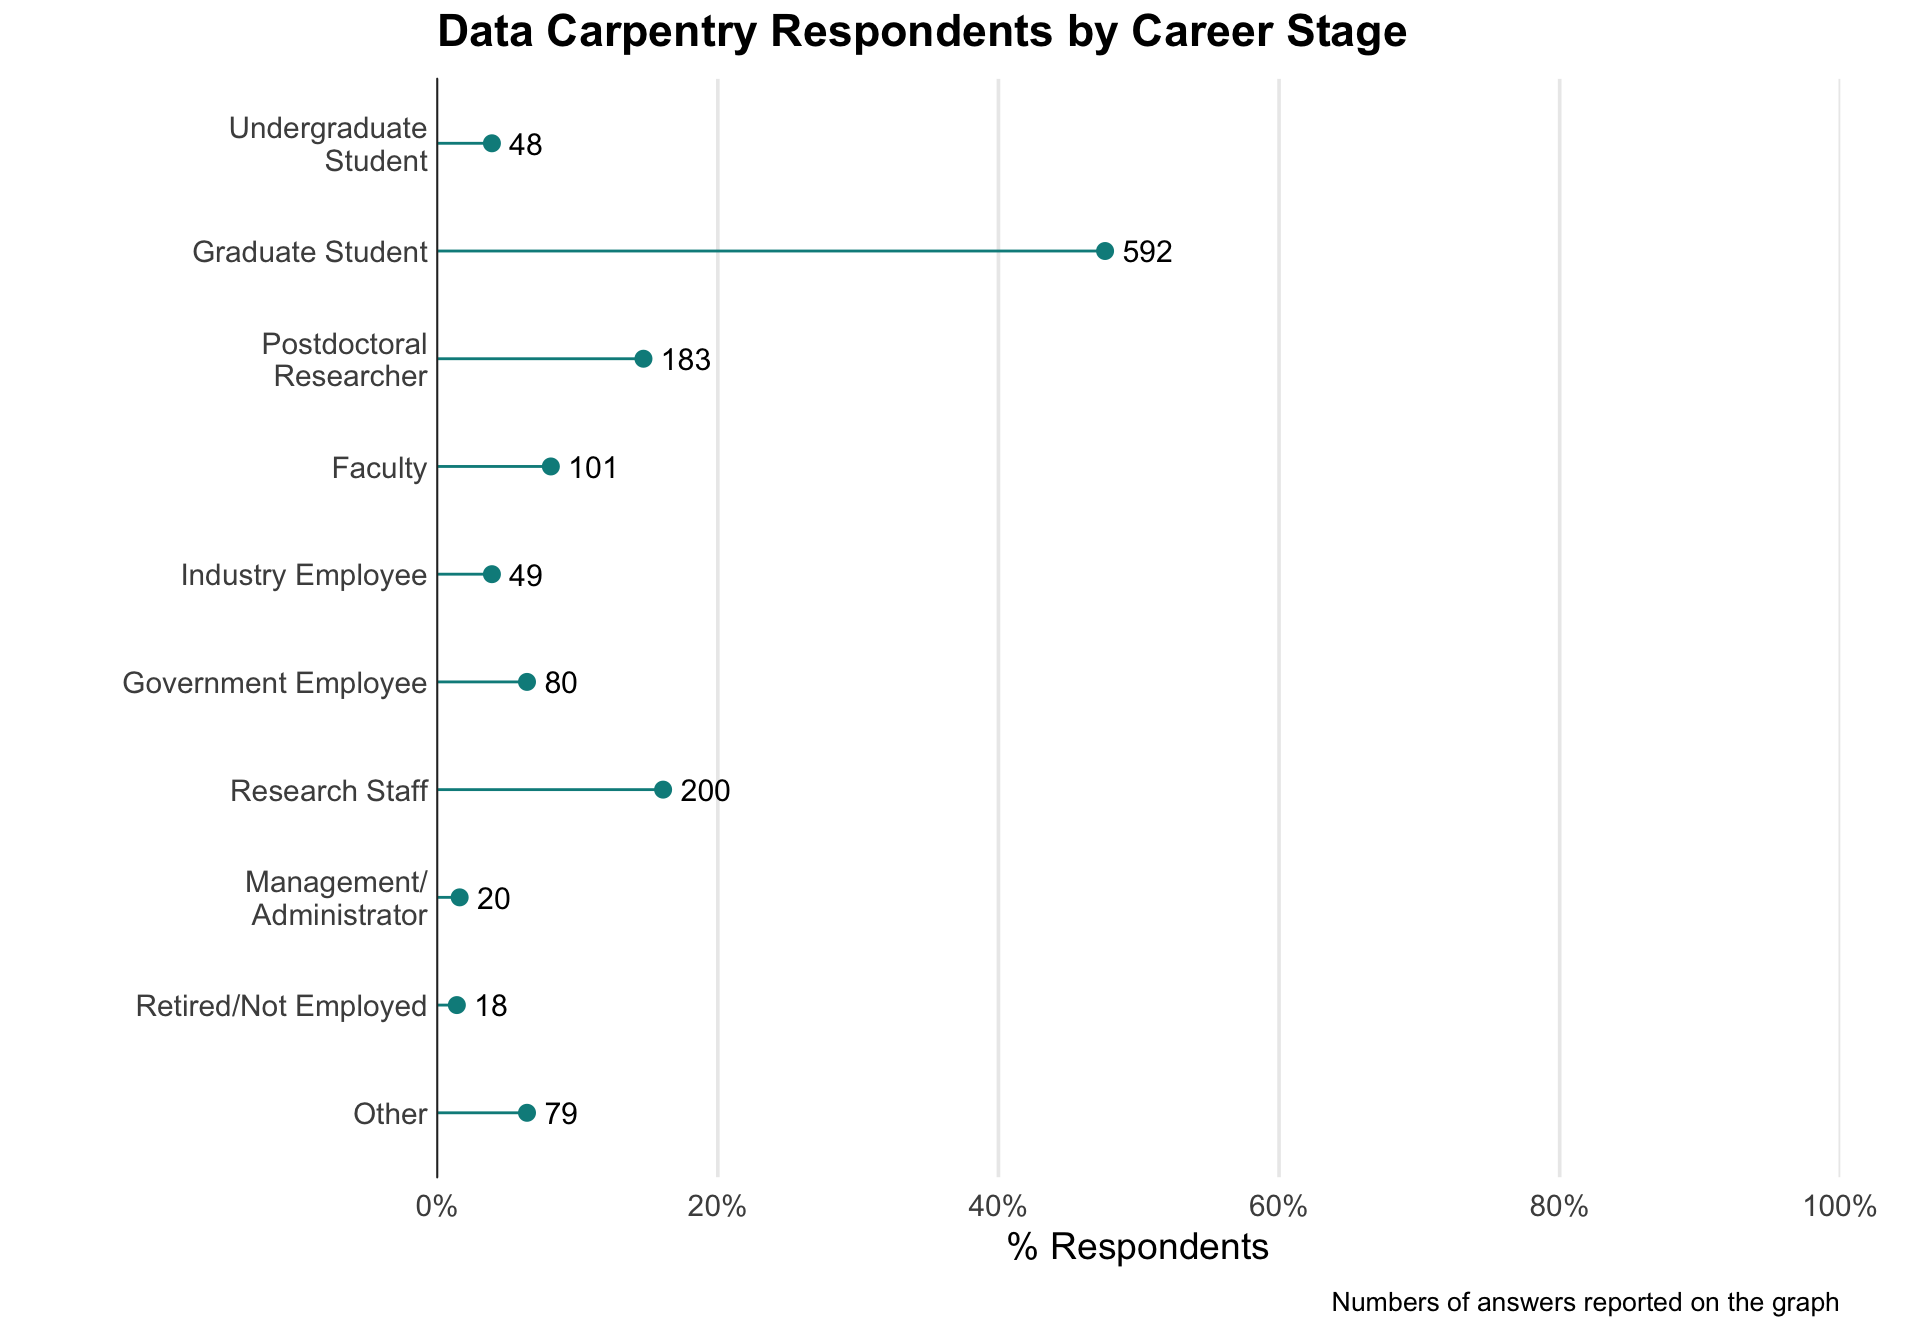 Data Carpentry Respondents by Career Stage